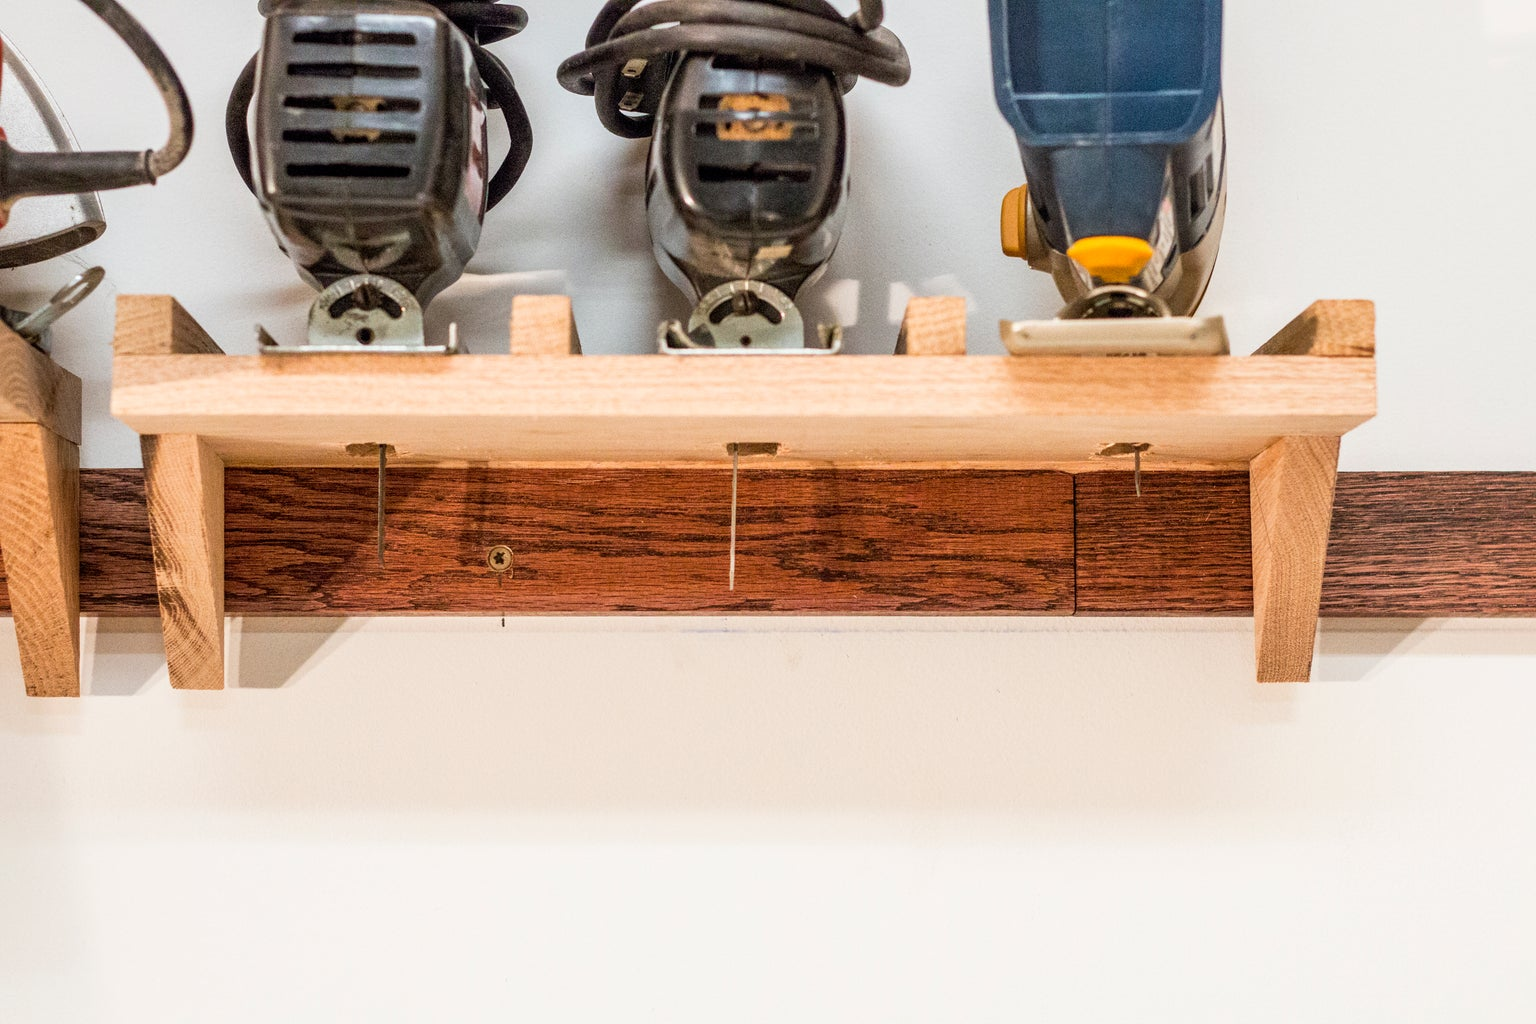 Build Tool Holders and Mounts